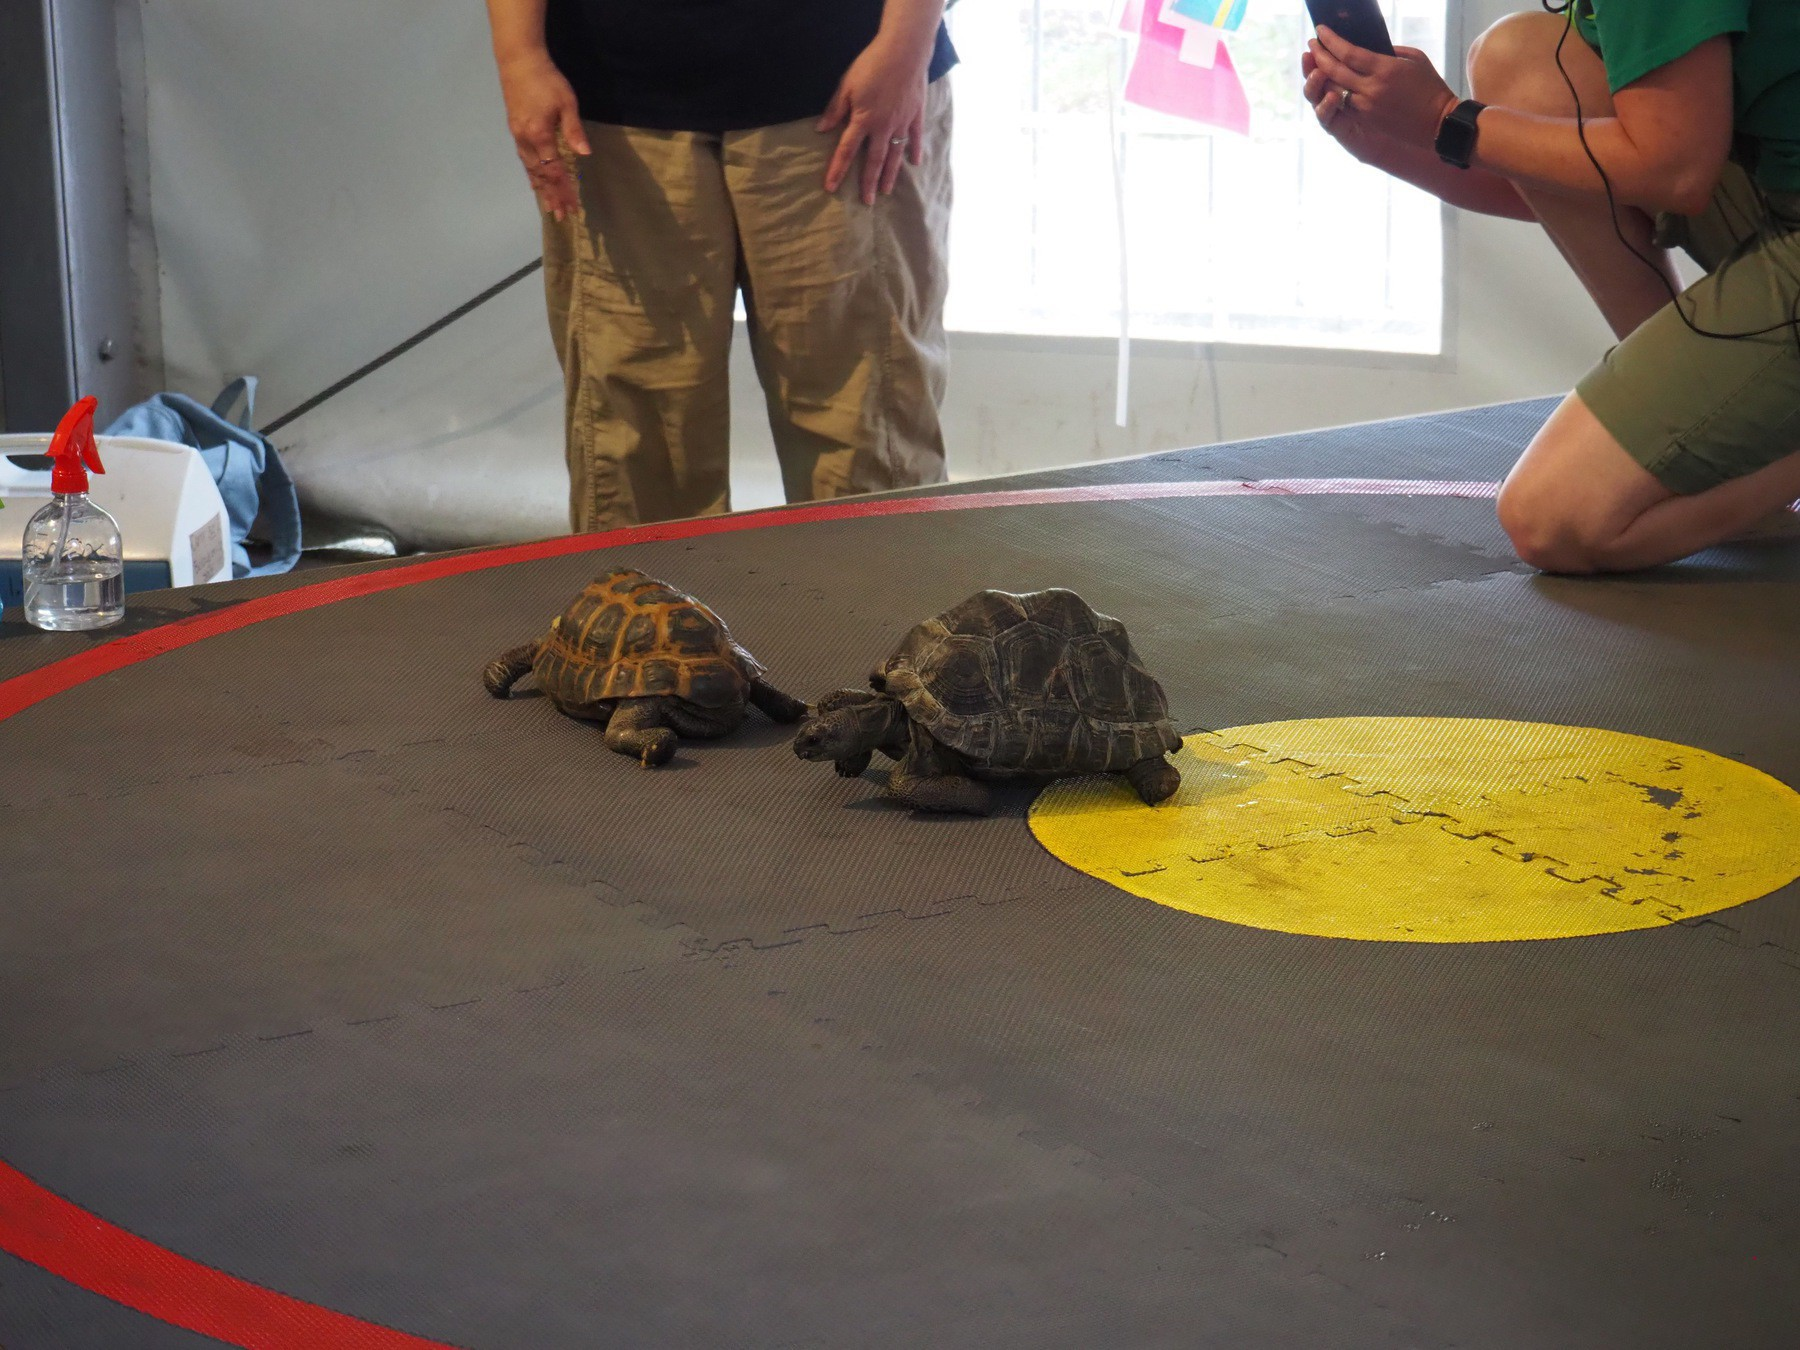 Two turtles racing inside a ring.